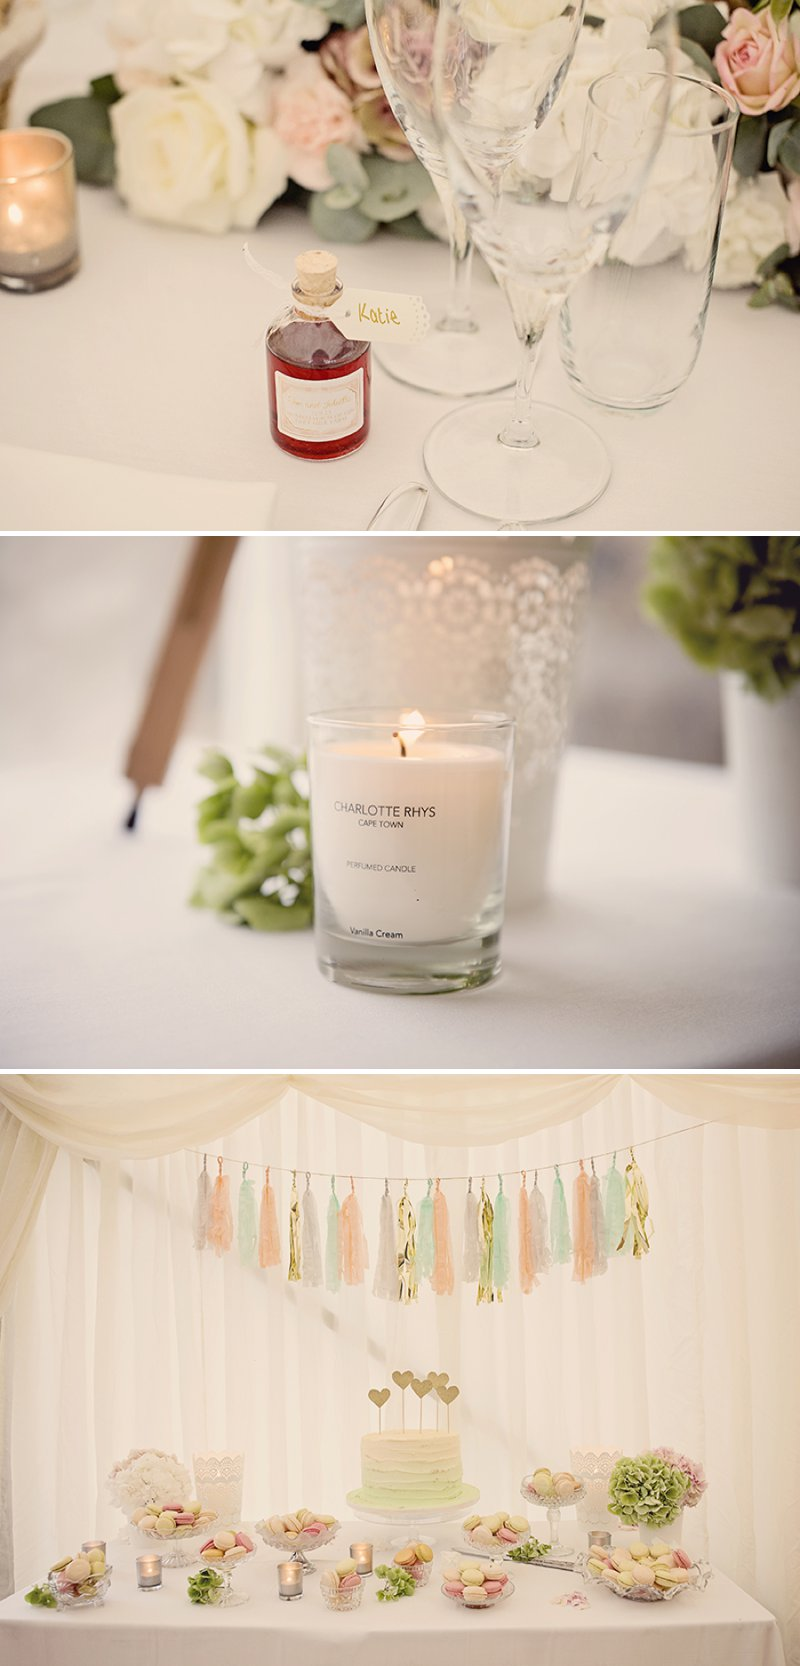 Contemporary Marquee Wedding With A Soft And Romantic Pastel Colour Scheme With Bride In Essense Of Australia Gown And Groom In Tails With Anges De Sucres Macarons And Images By Razia N Jukes Photography 6